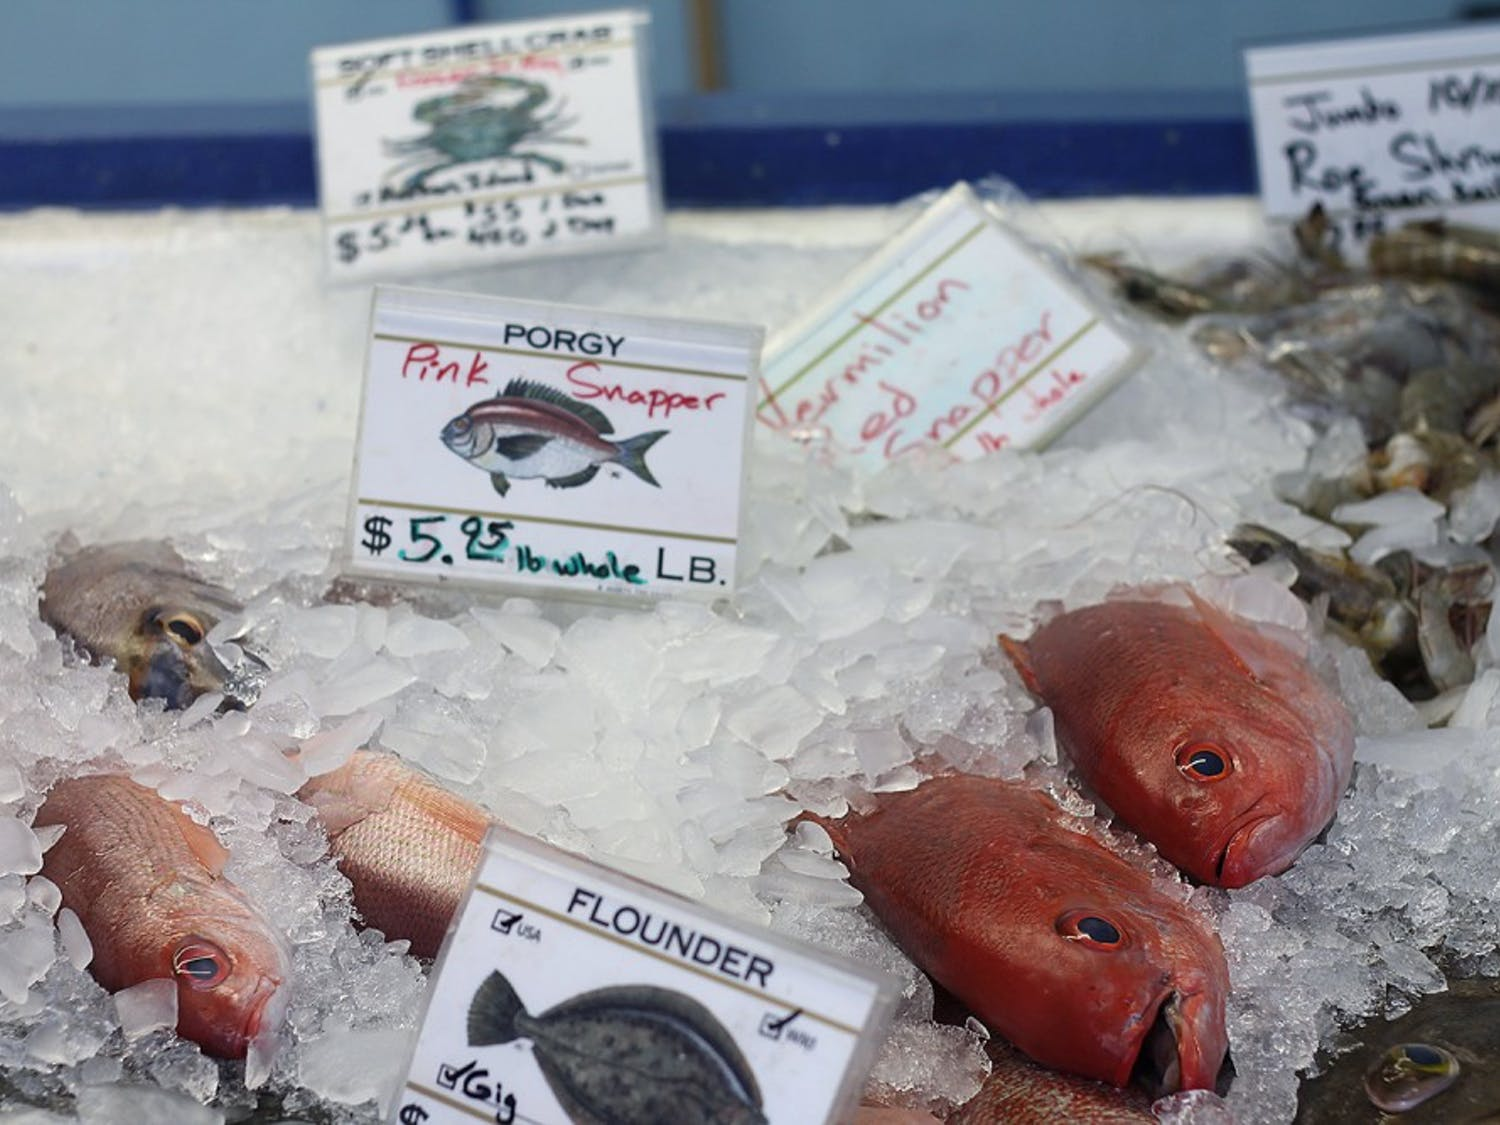 Blue Ocean Market provides seasonal seafood, including fish like pink and vermillion red snapper (above), to restaurants and consumers near its location in Morehead City and to the Triangle area.